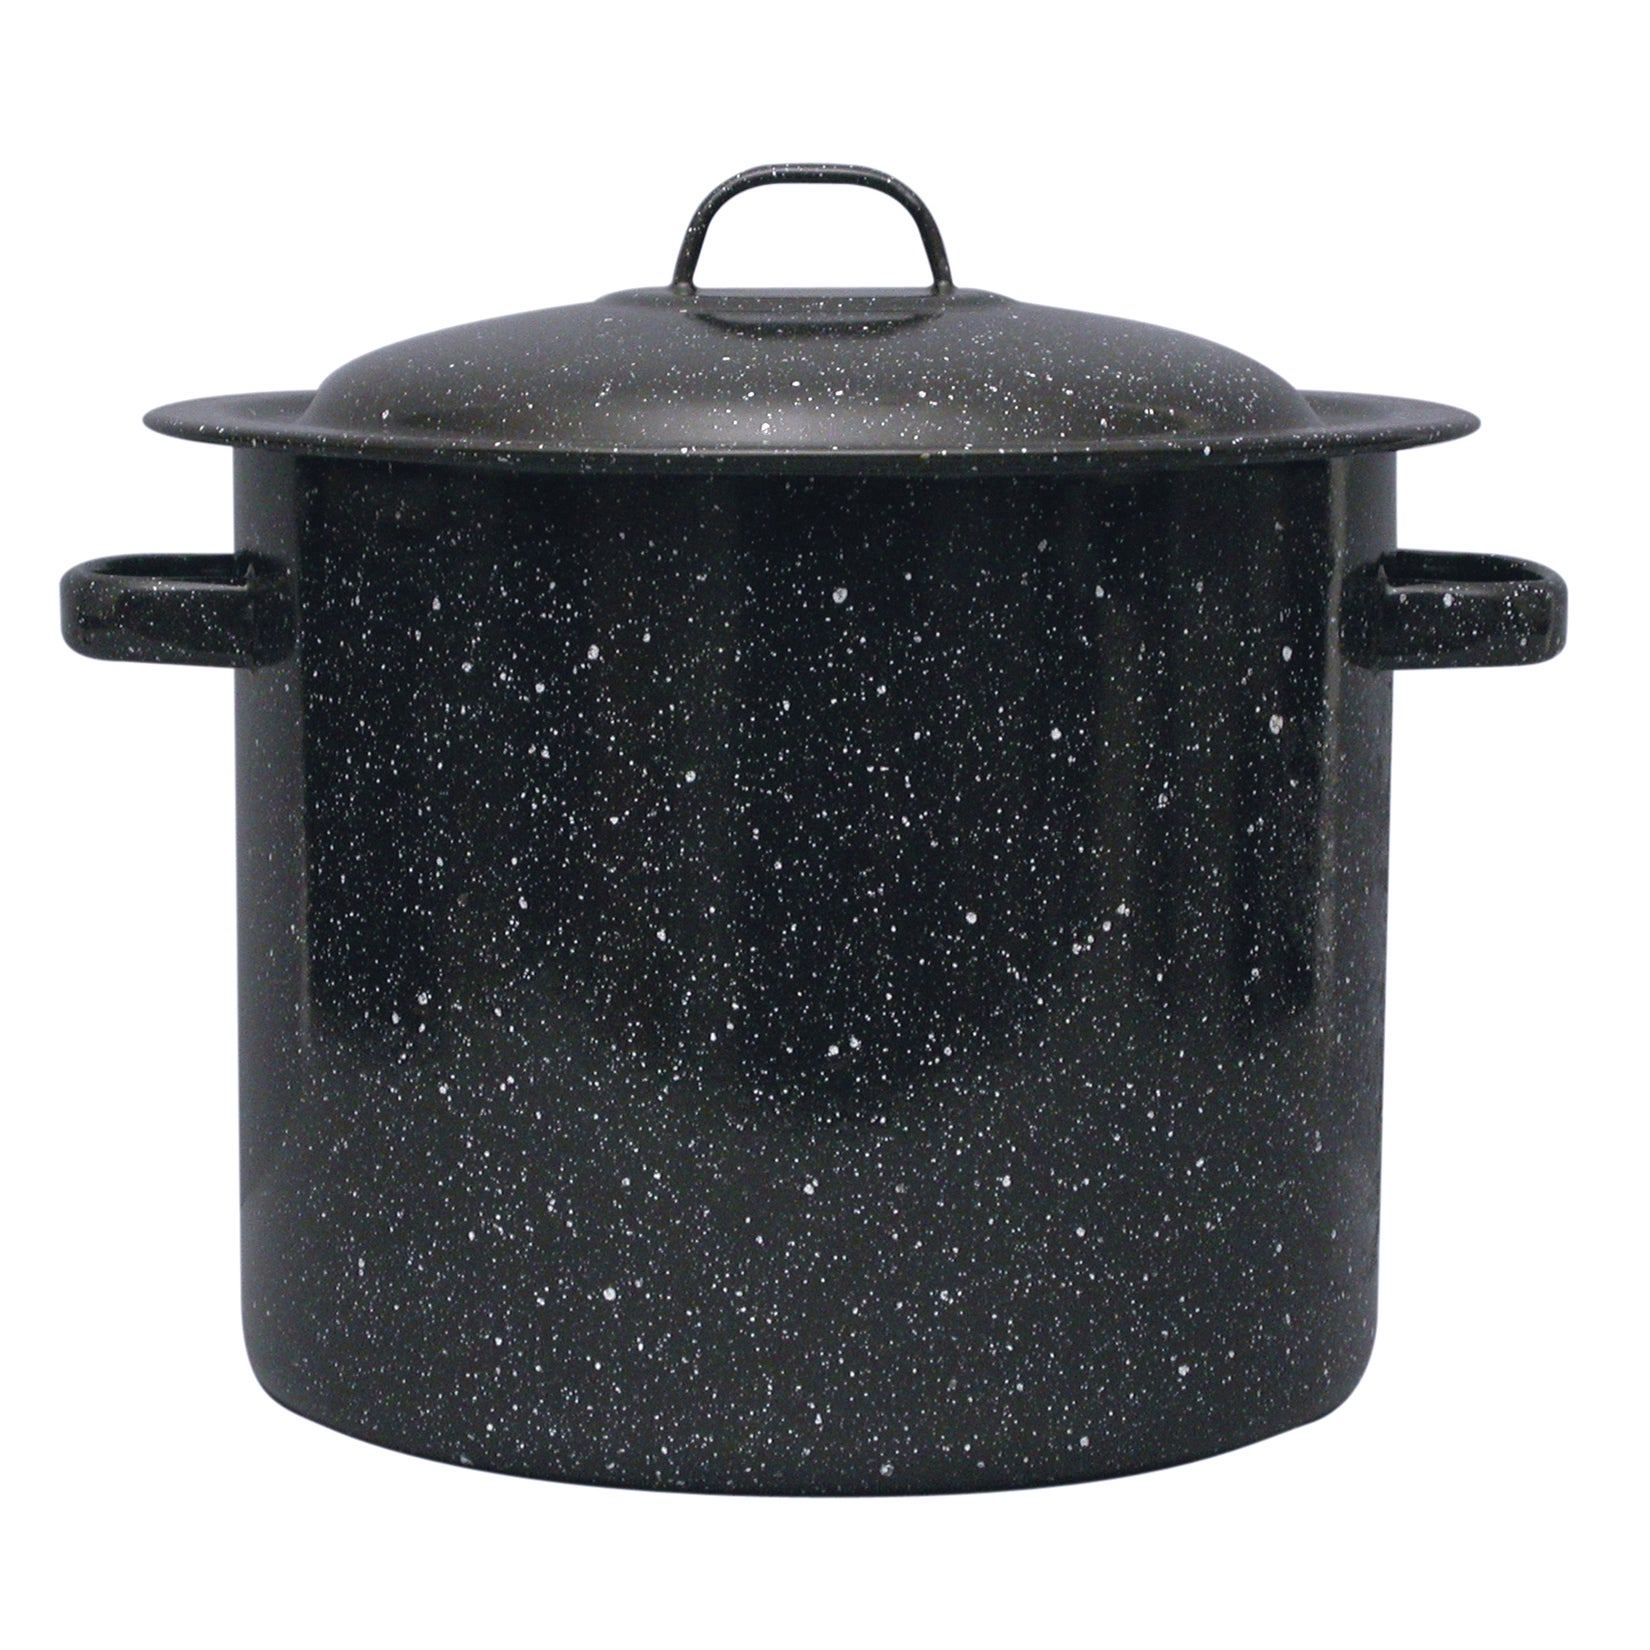 Granite Ware F6124T-1 16 Quart Black Ceramic Stock Pot (1...